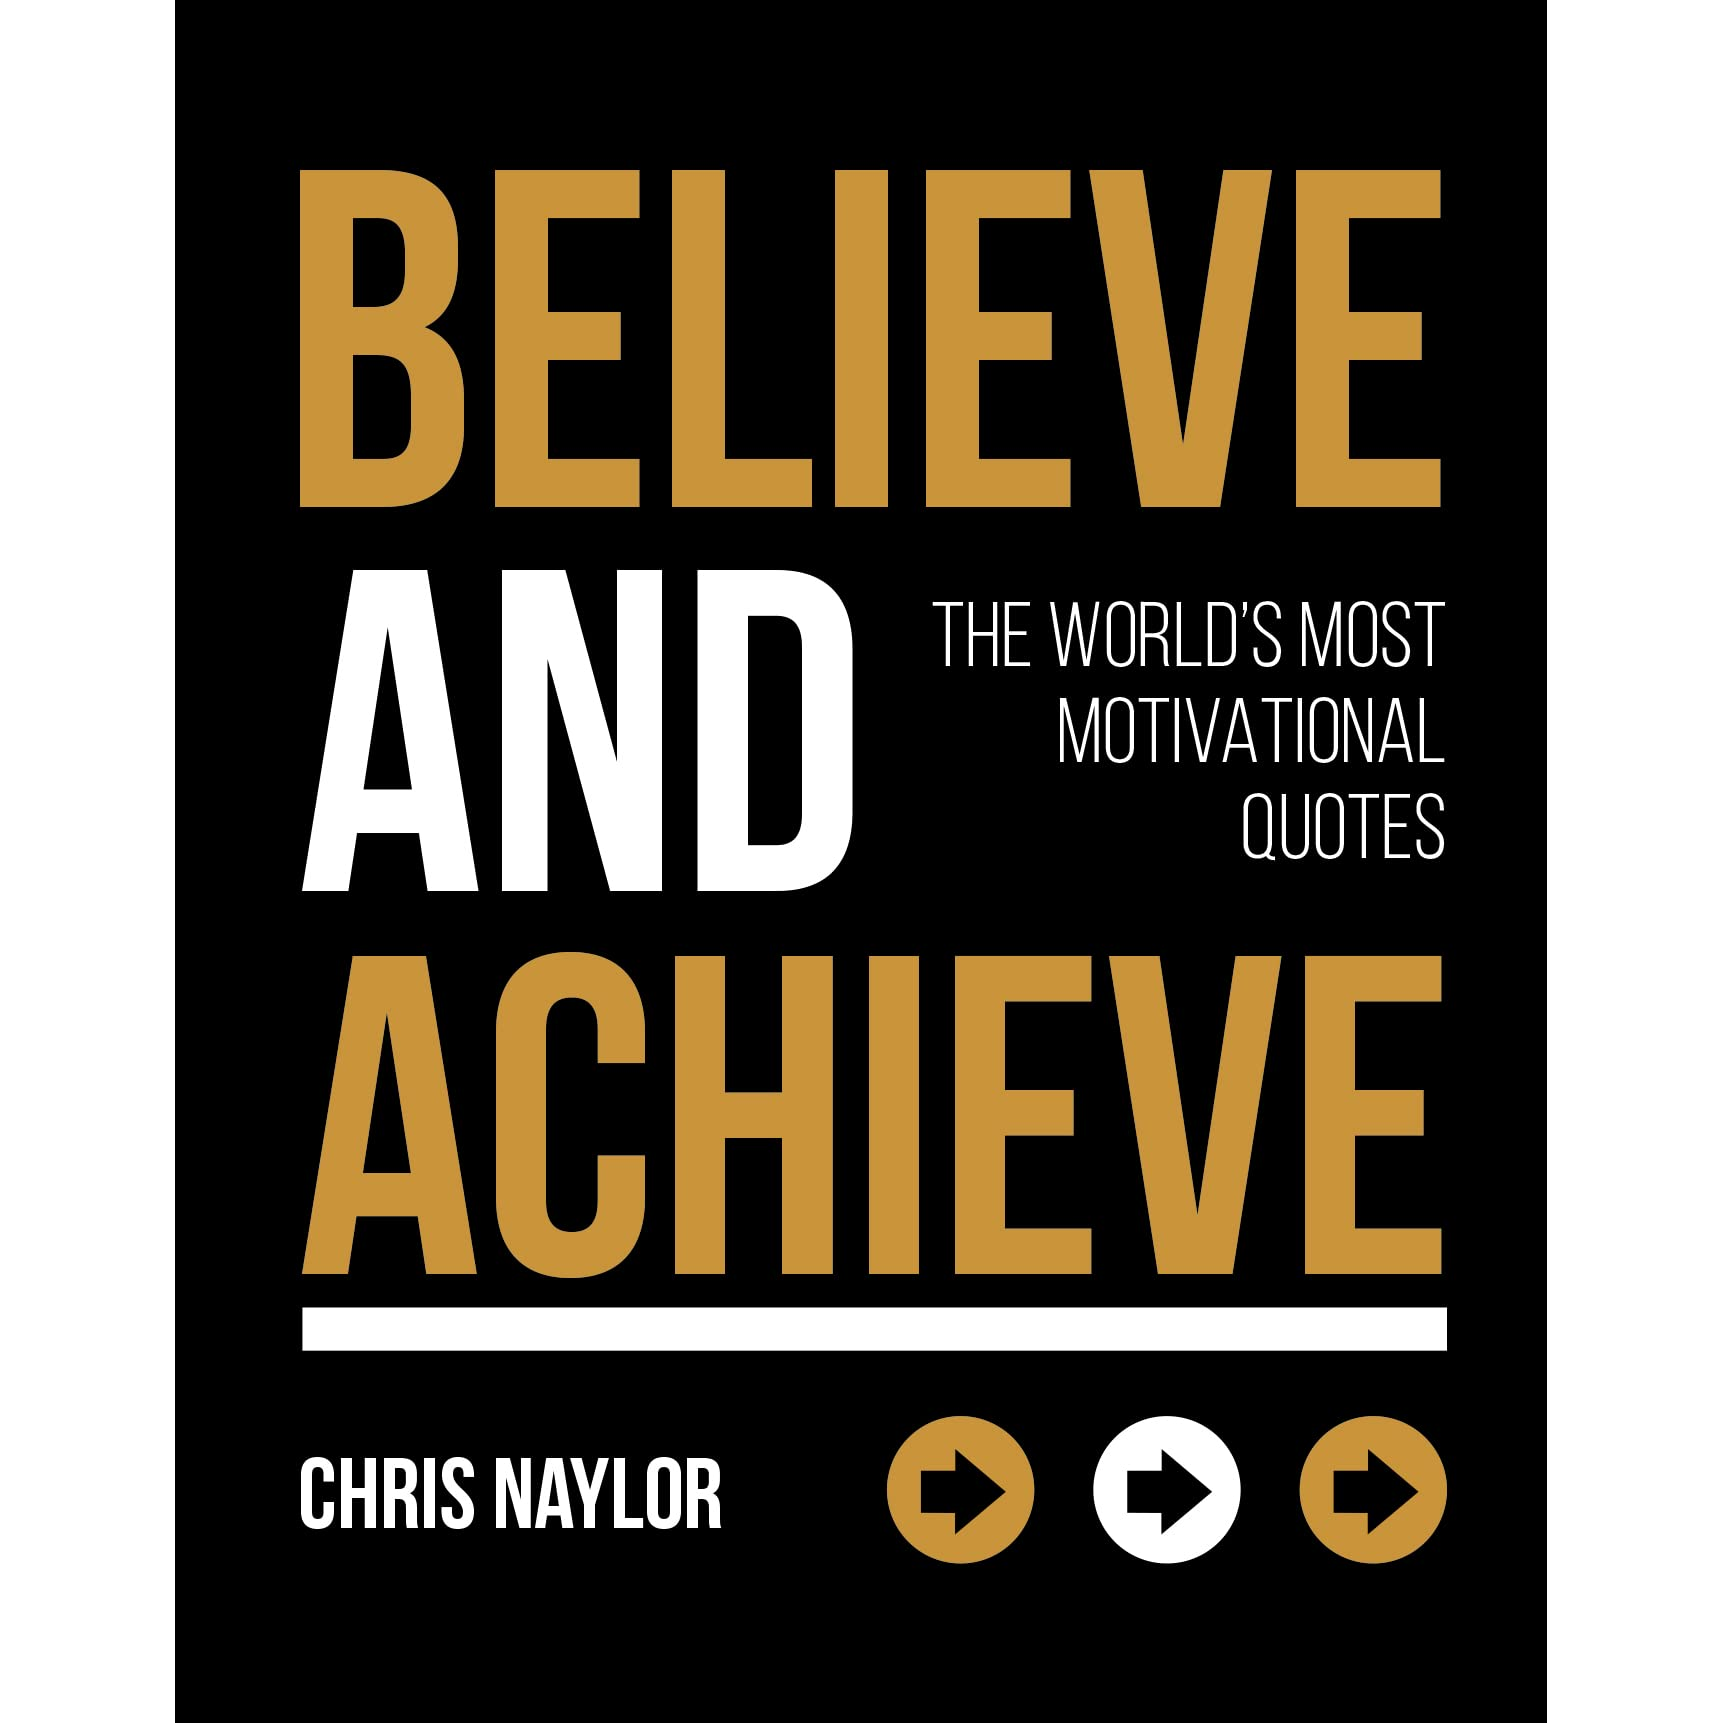 Believe And Achieve The World S Most Motivational Quotes By Chris Naylor